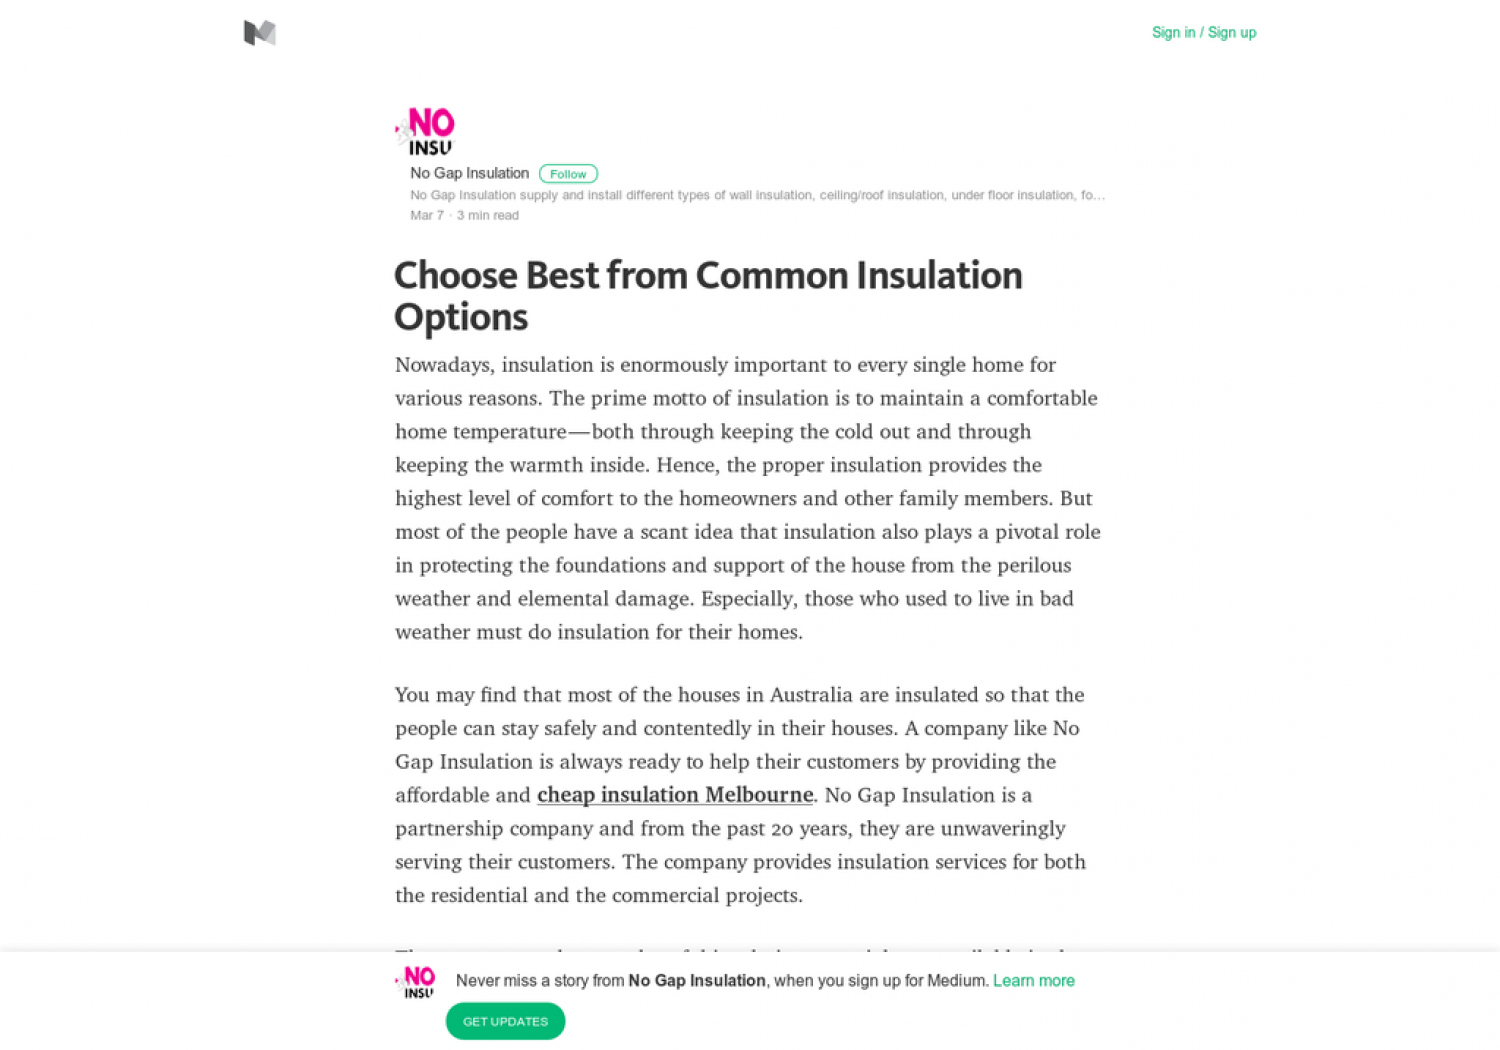 Choose Best from Common Insulation Options Infographic